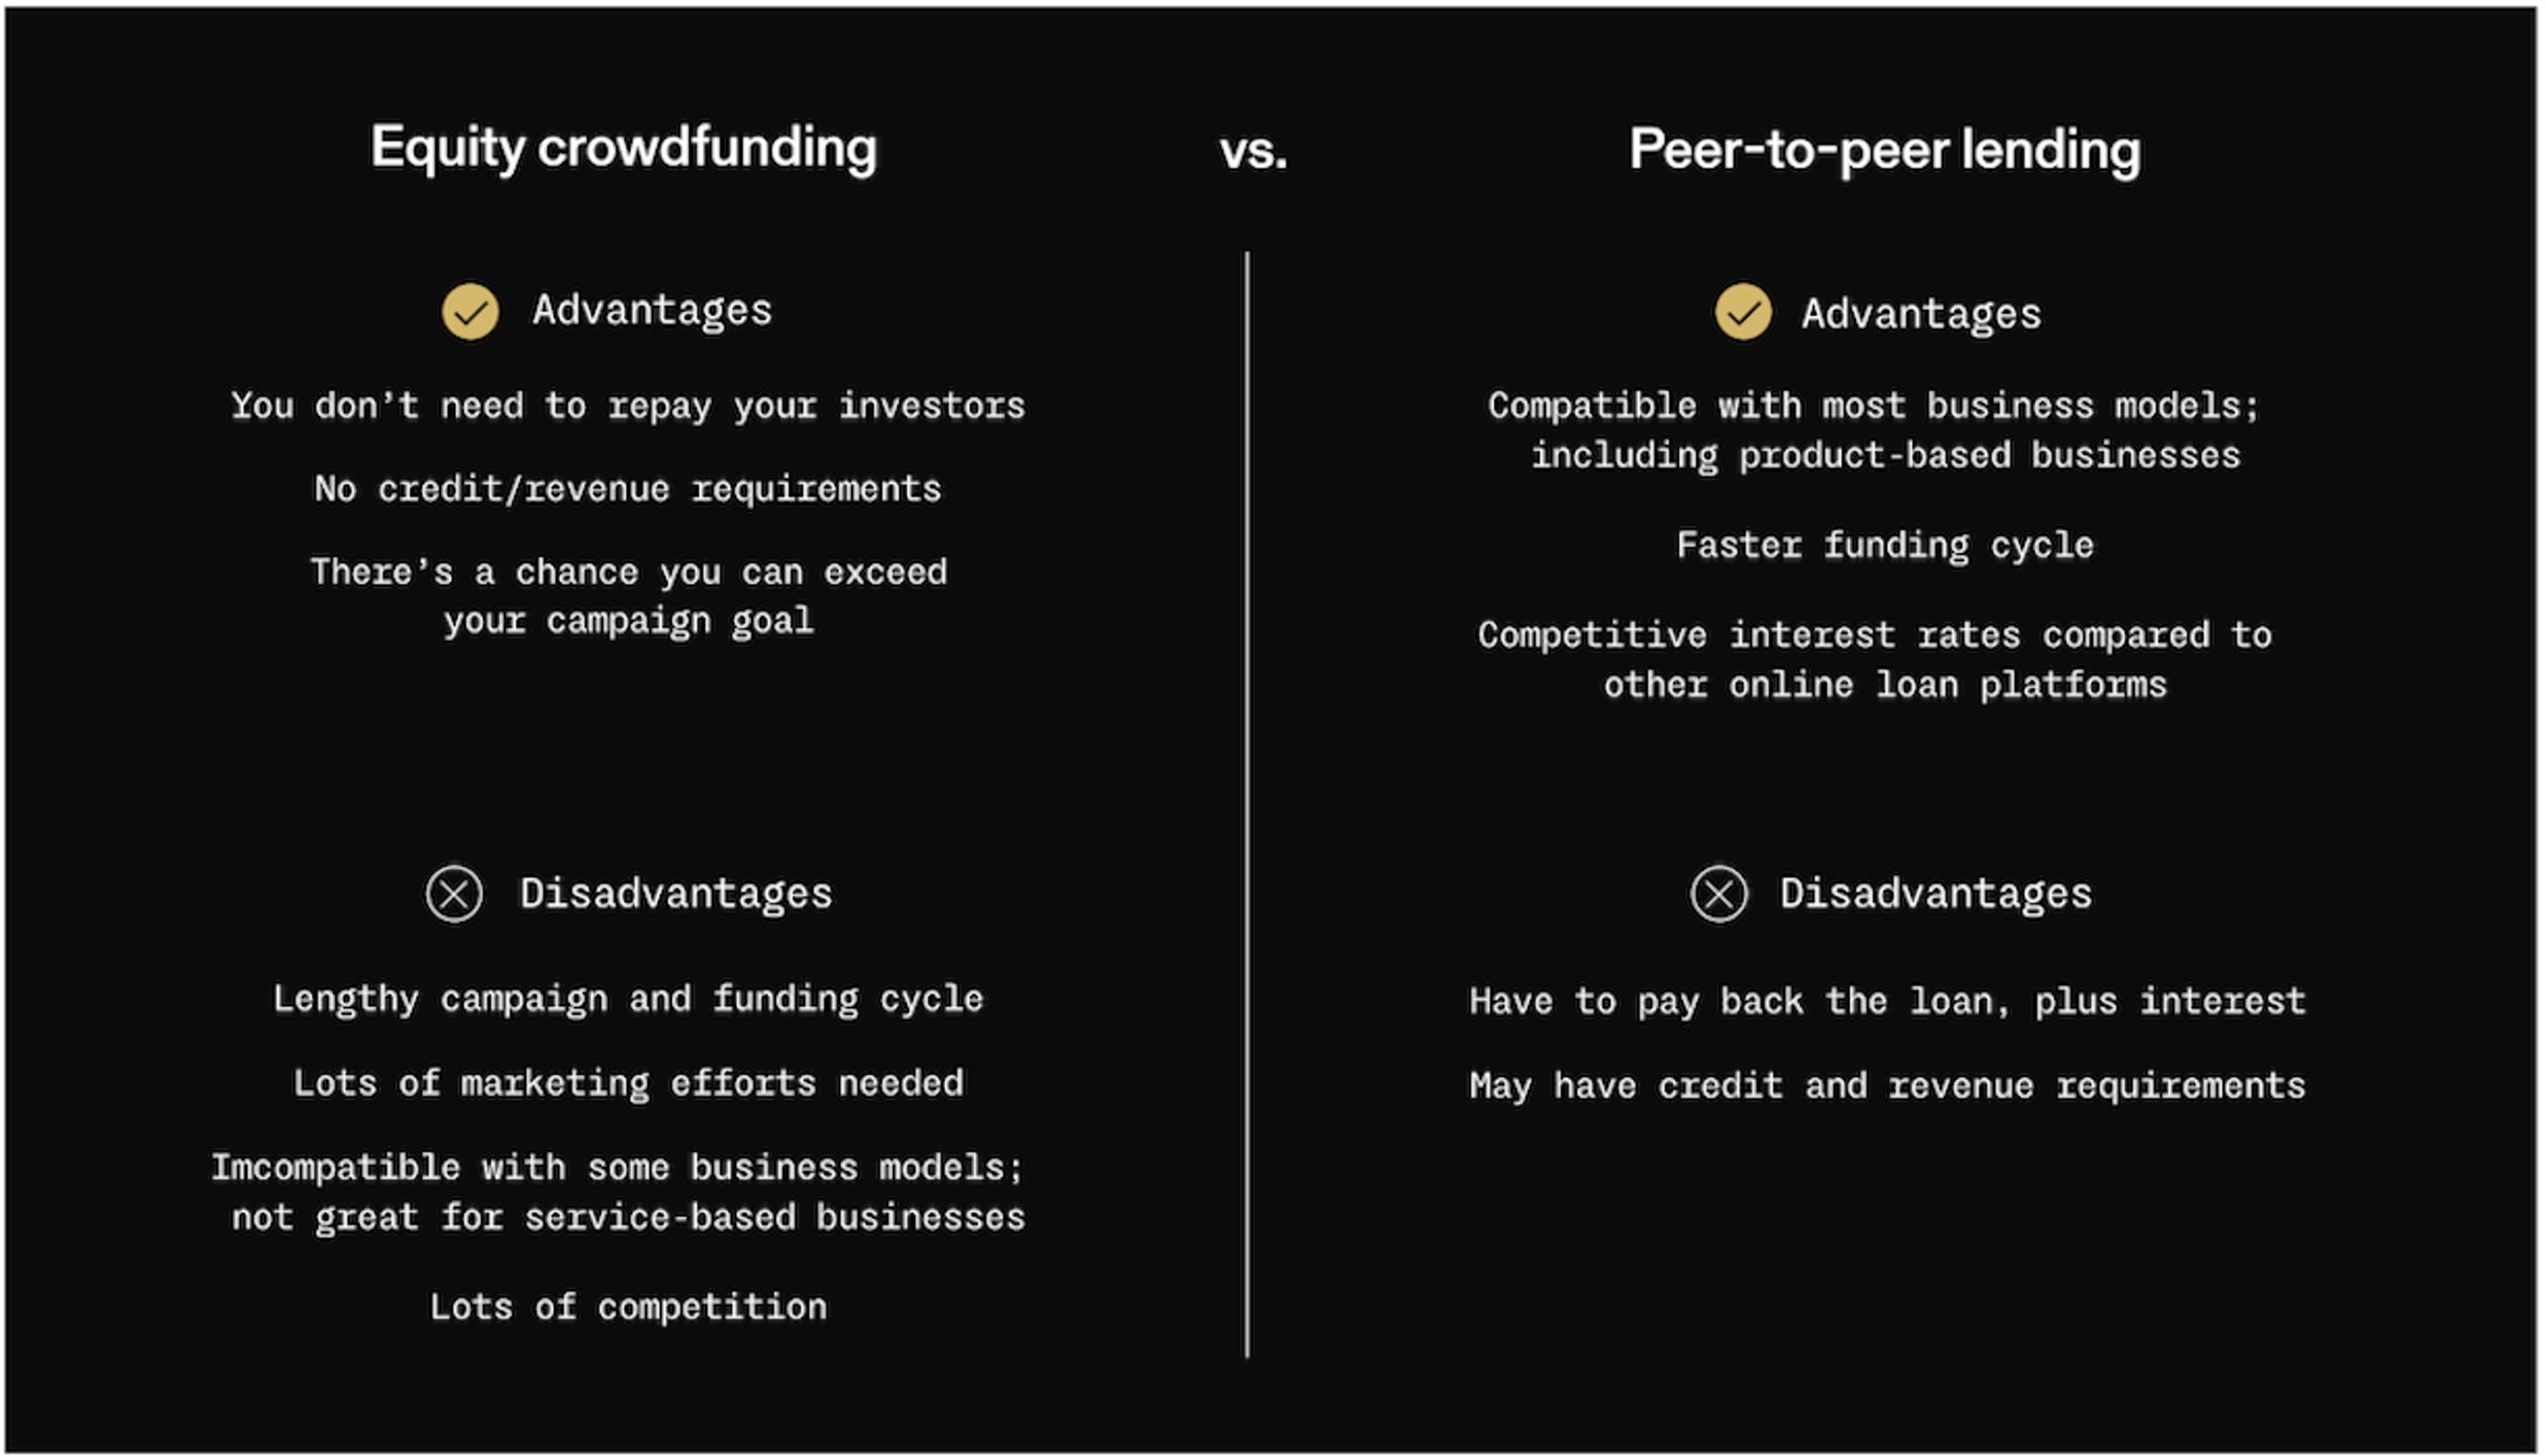 A table comparing Equity crowdfunding to peer-to-peer lending. Advantages of equity funding are: You don't need to repay your investors. No credit/revenue requirements. There's a chance you can exceed your campaign goal. Disadvantages are: Lengthy campaign and funding cycle. Lots of marketing efforts needed. Incompatible with some business models; not great for service-based businesses. Lots of competition. Advantages of peer-to-peer lending are: Compatible with most business models, including product-based businesses. Faster funding cycle. Competitive interest rates compared to other online loan platforms. Disadvantages are: Have to pay back the loan, plus interest. May have credit and revenue requirements.